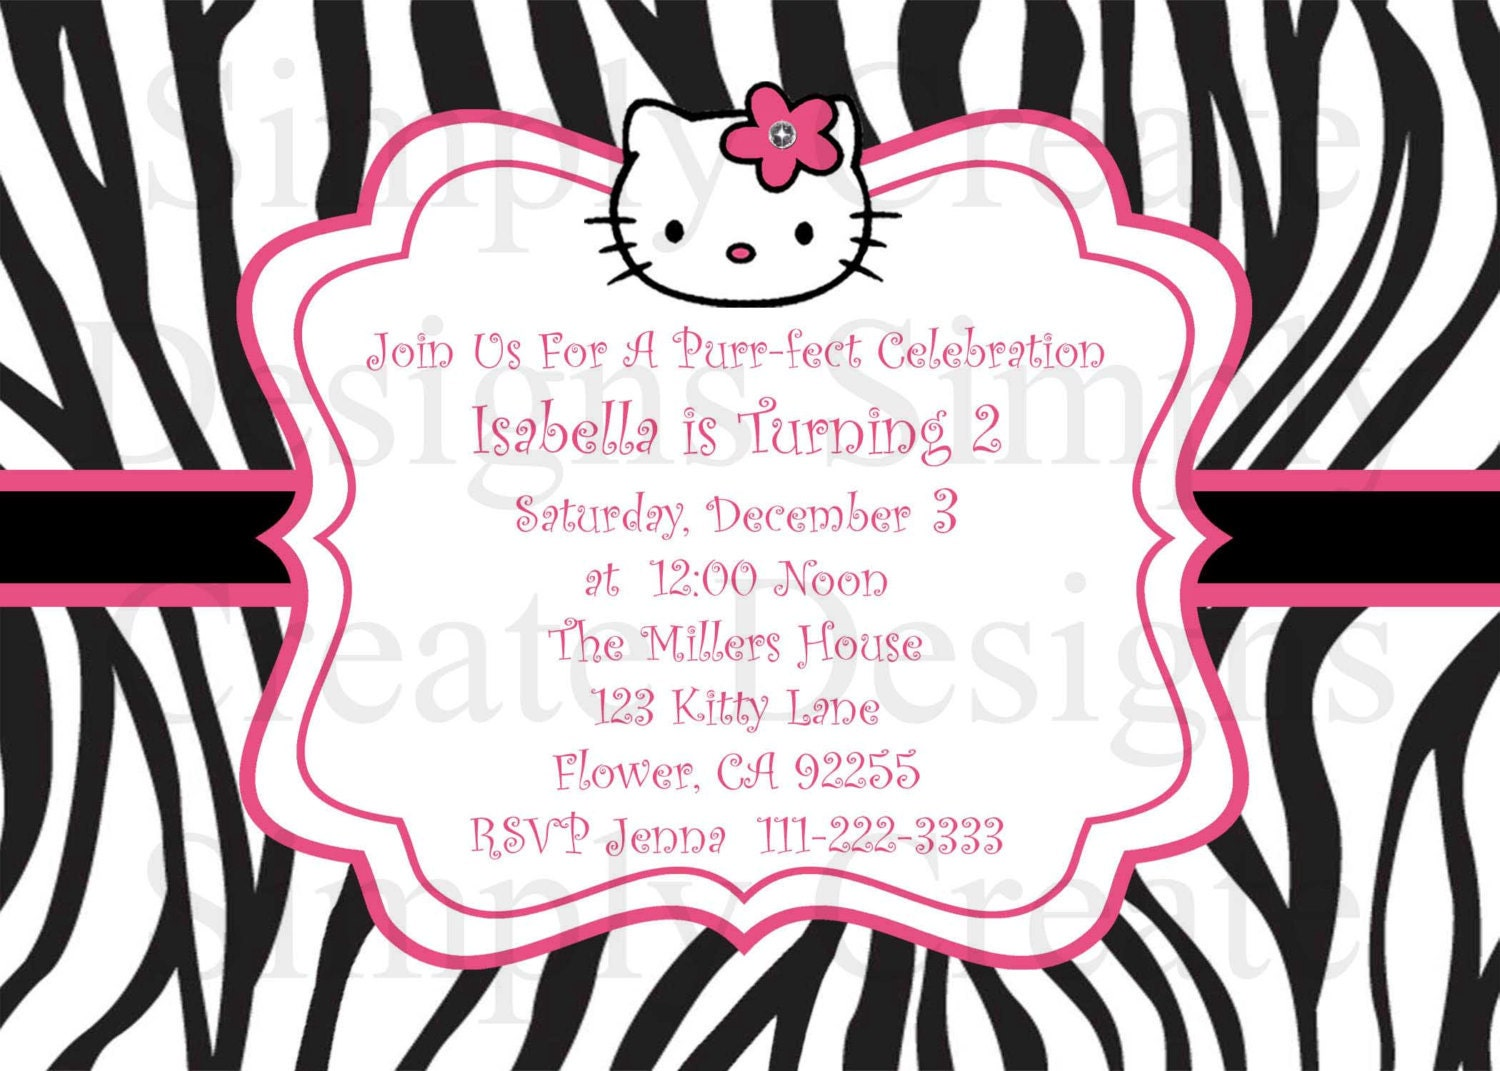 Nice 010 Editor Templates Small 10 Tips For Good Resume Writing Rectangular 1920s Party Invitation Template 2 Page Resume Too Long Youthful 2014 Diary Template Orange2015 Monthly Calendar Template Hello Kitty Invitation Zebra Invite DIGITAL 5x7 Jpeg File